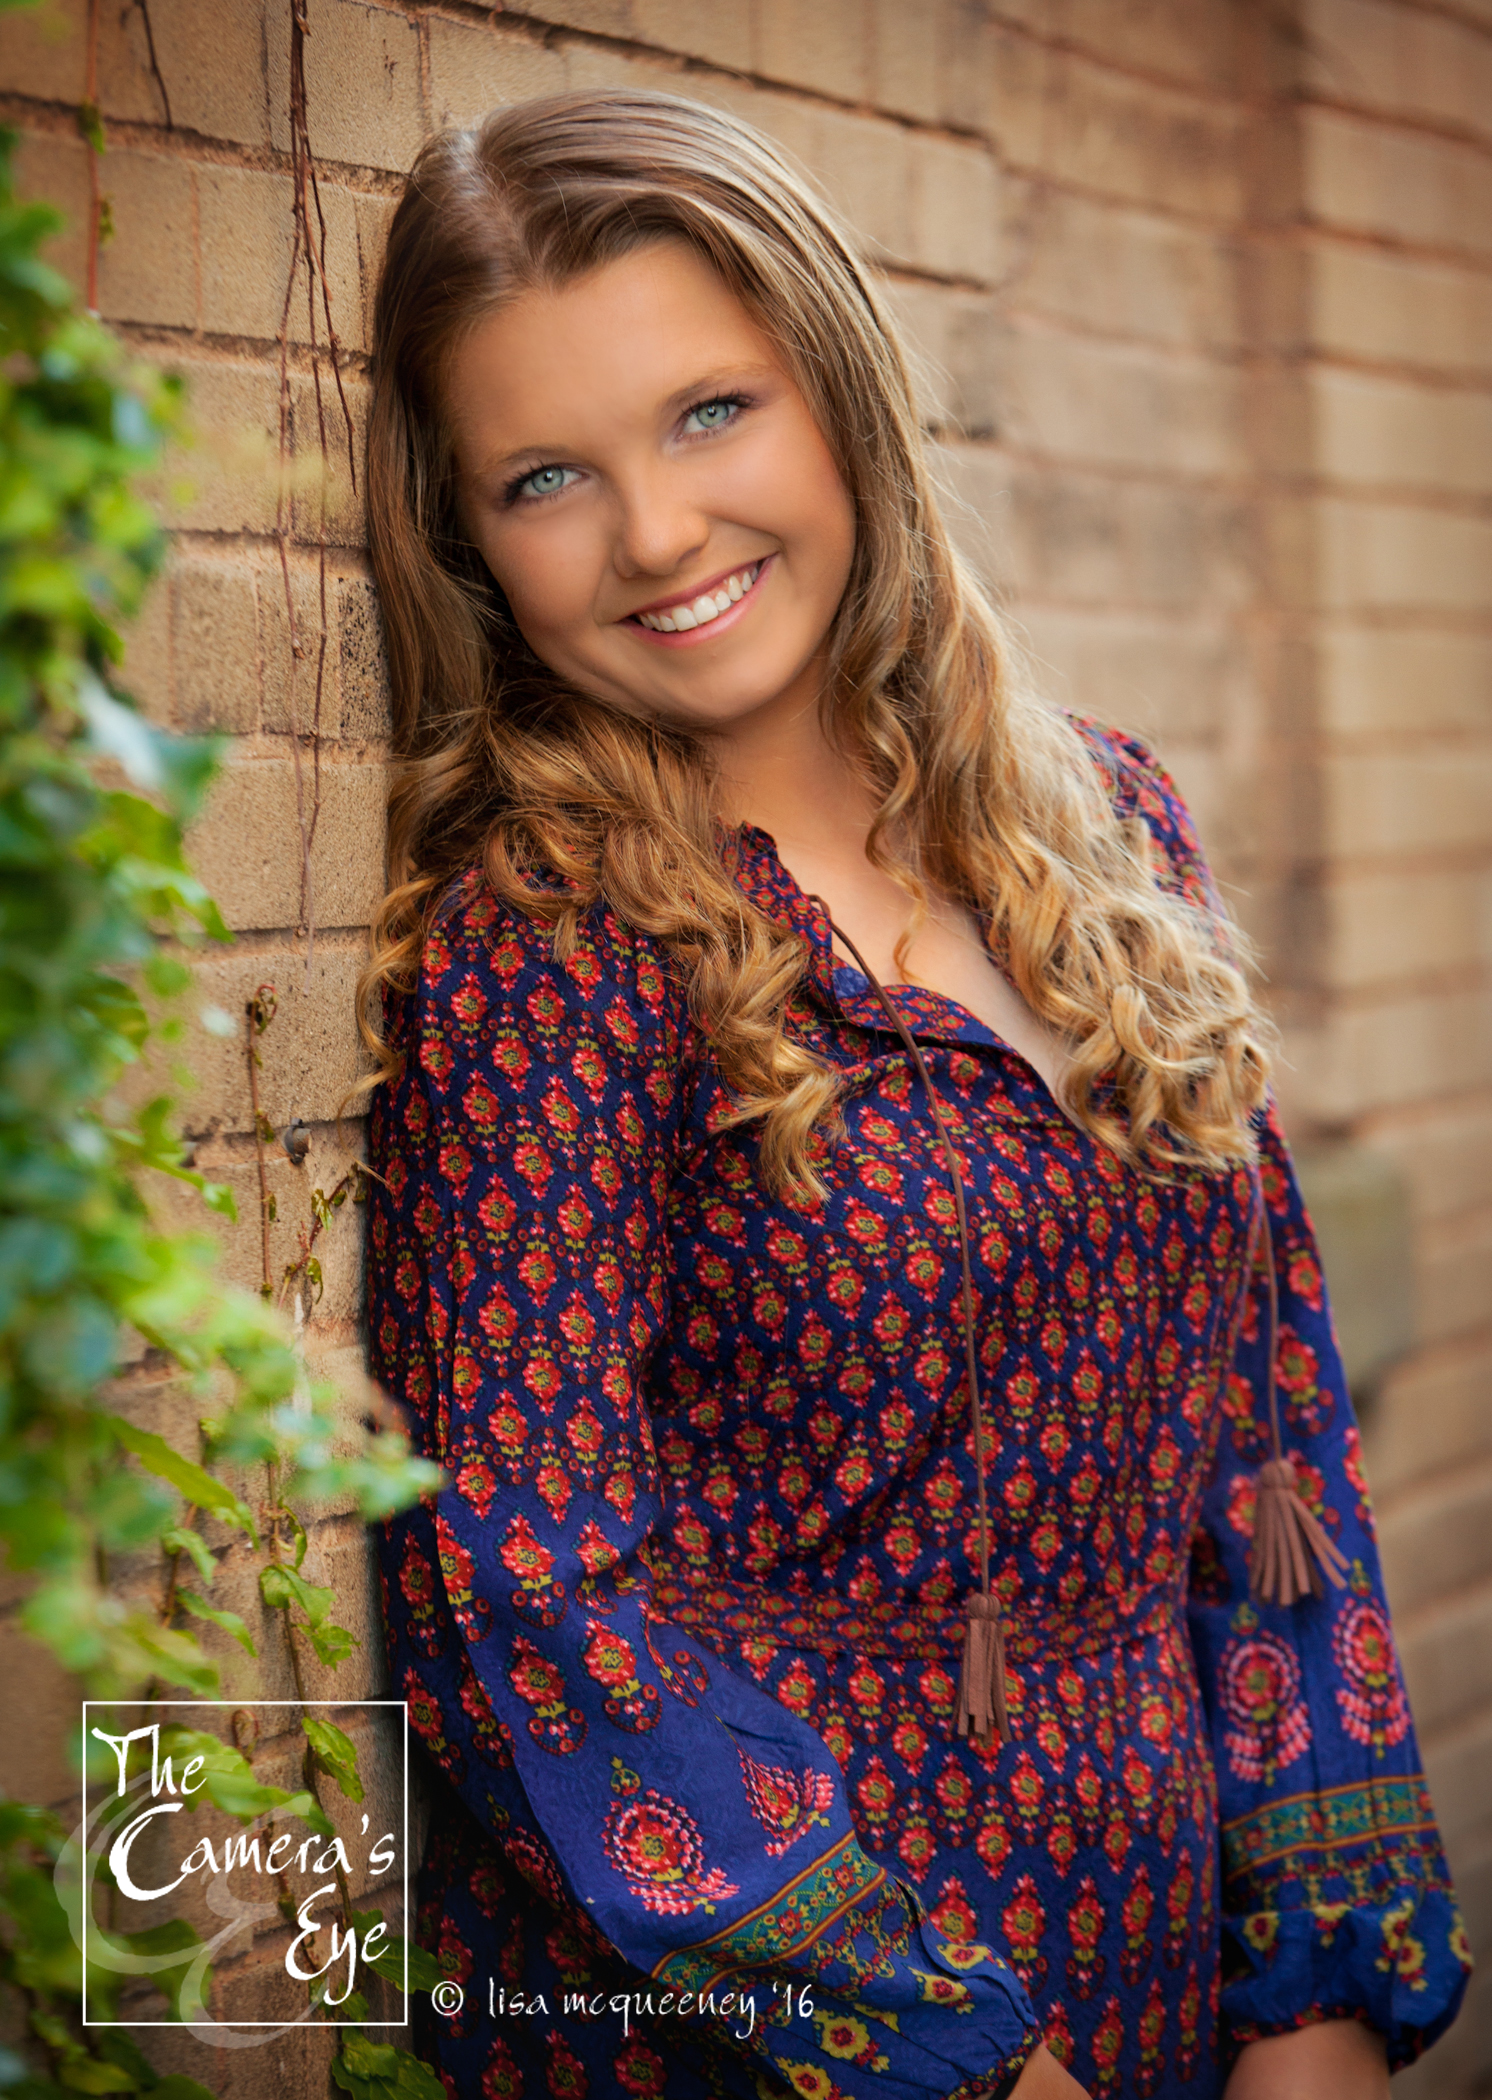 The Camera's Eye, Senior Picture4